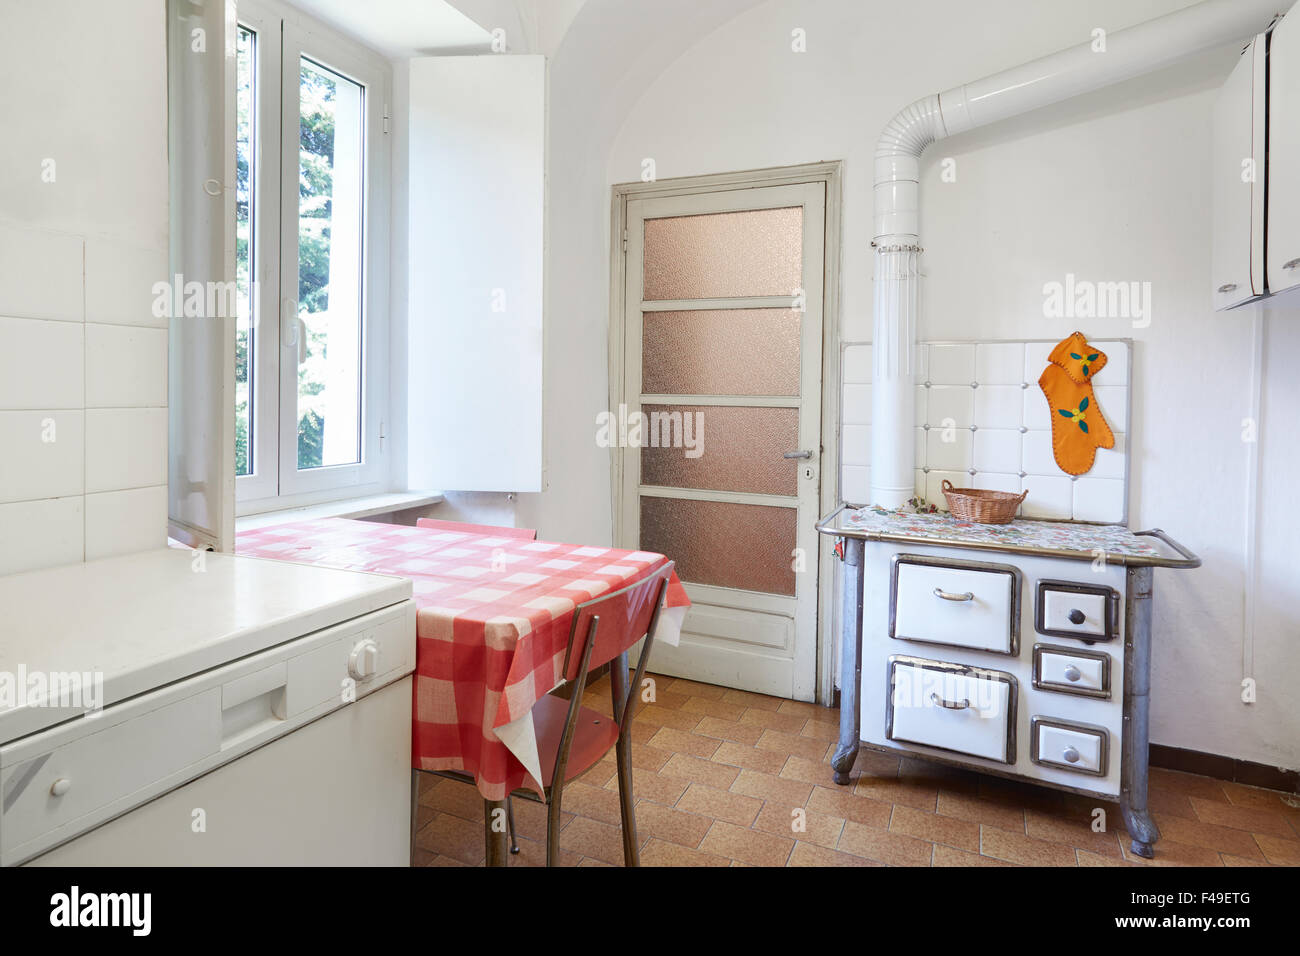 Old kitchen with stove in normal interior Stock Photo